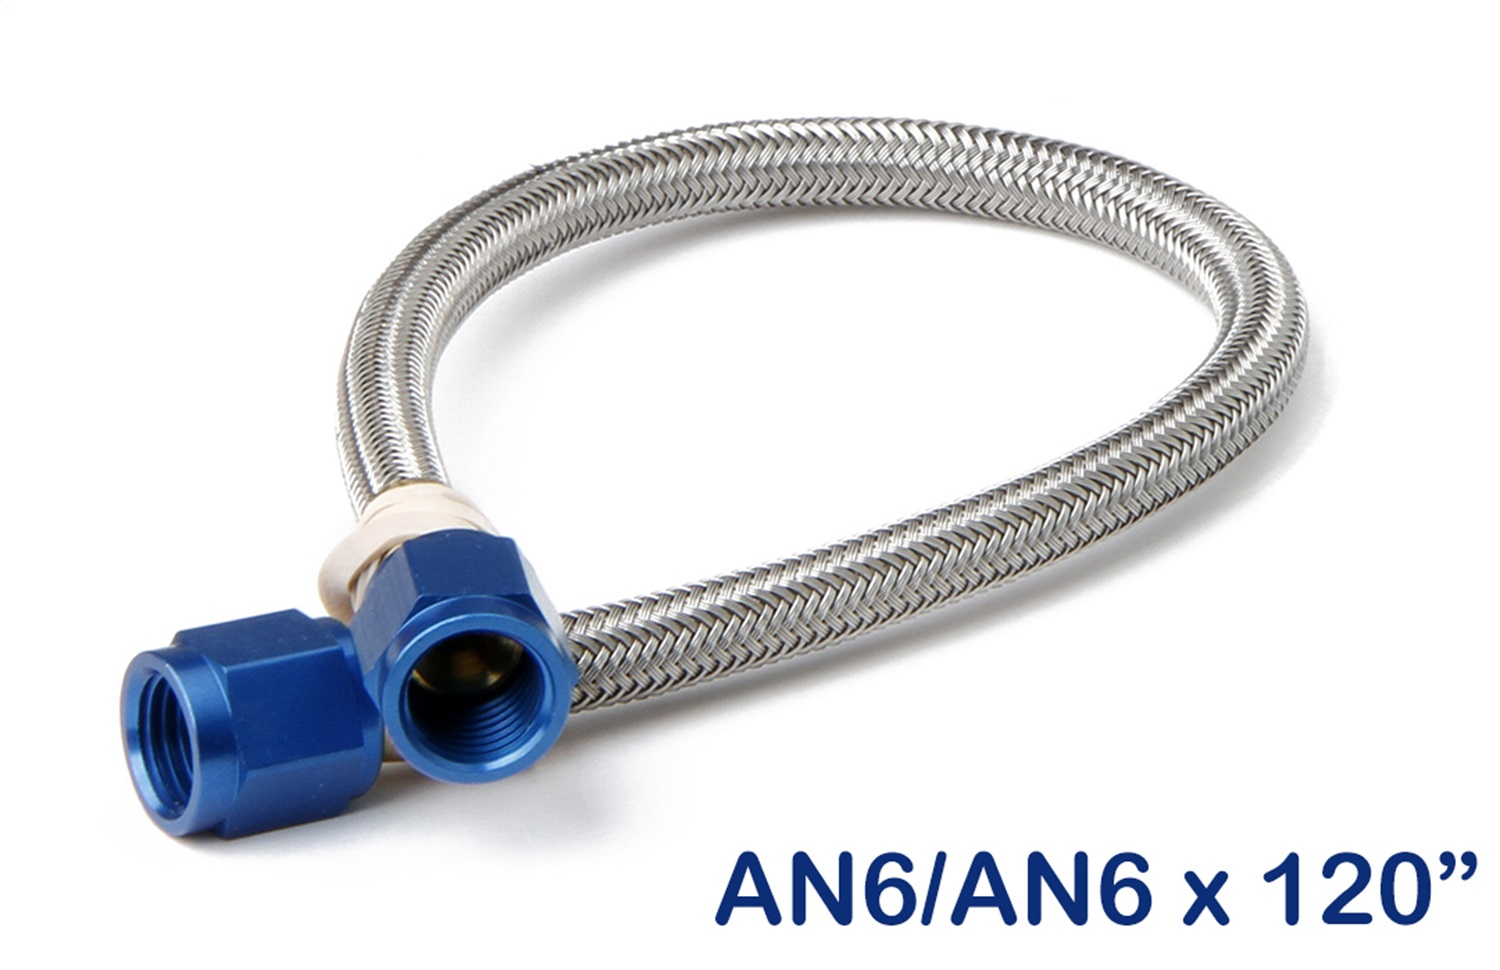 NOS 15460NOS Stainless Steel Braided Hose